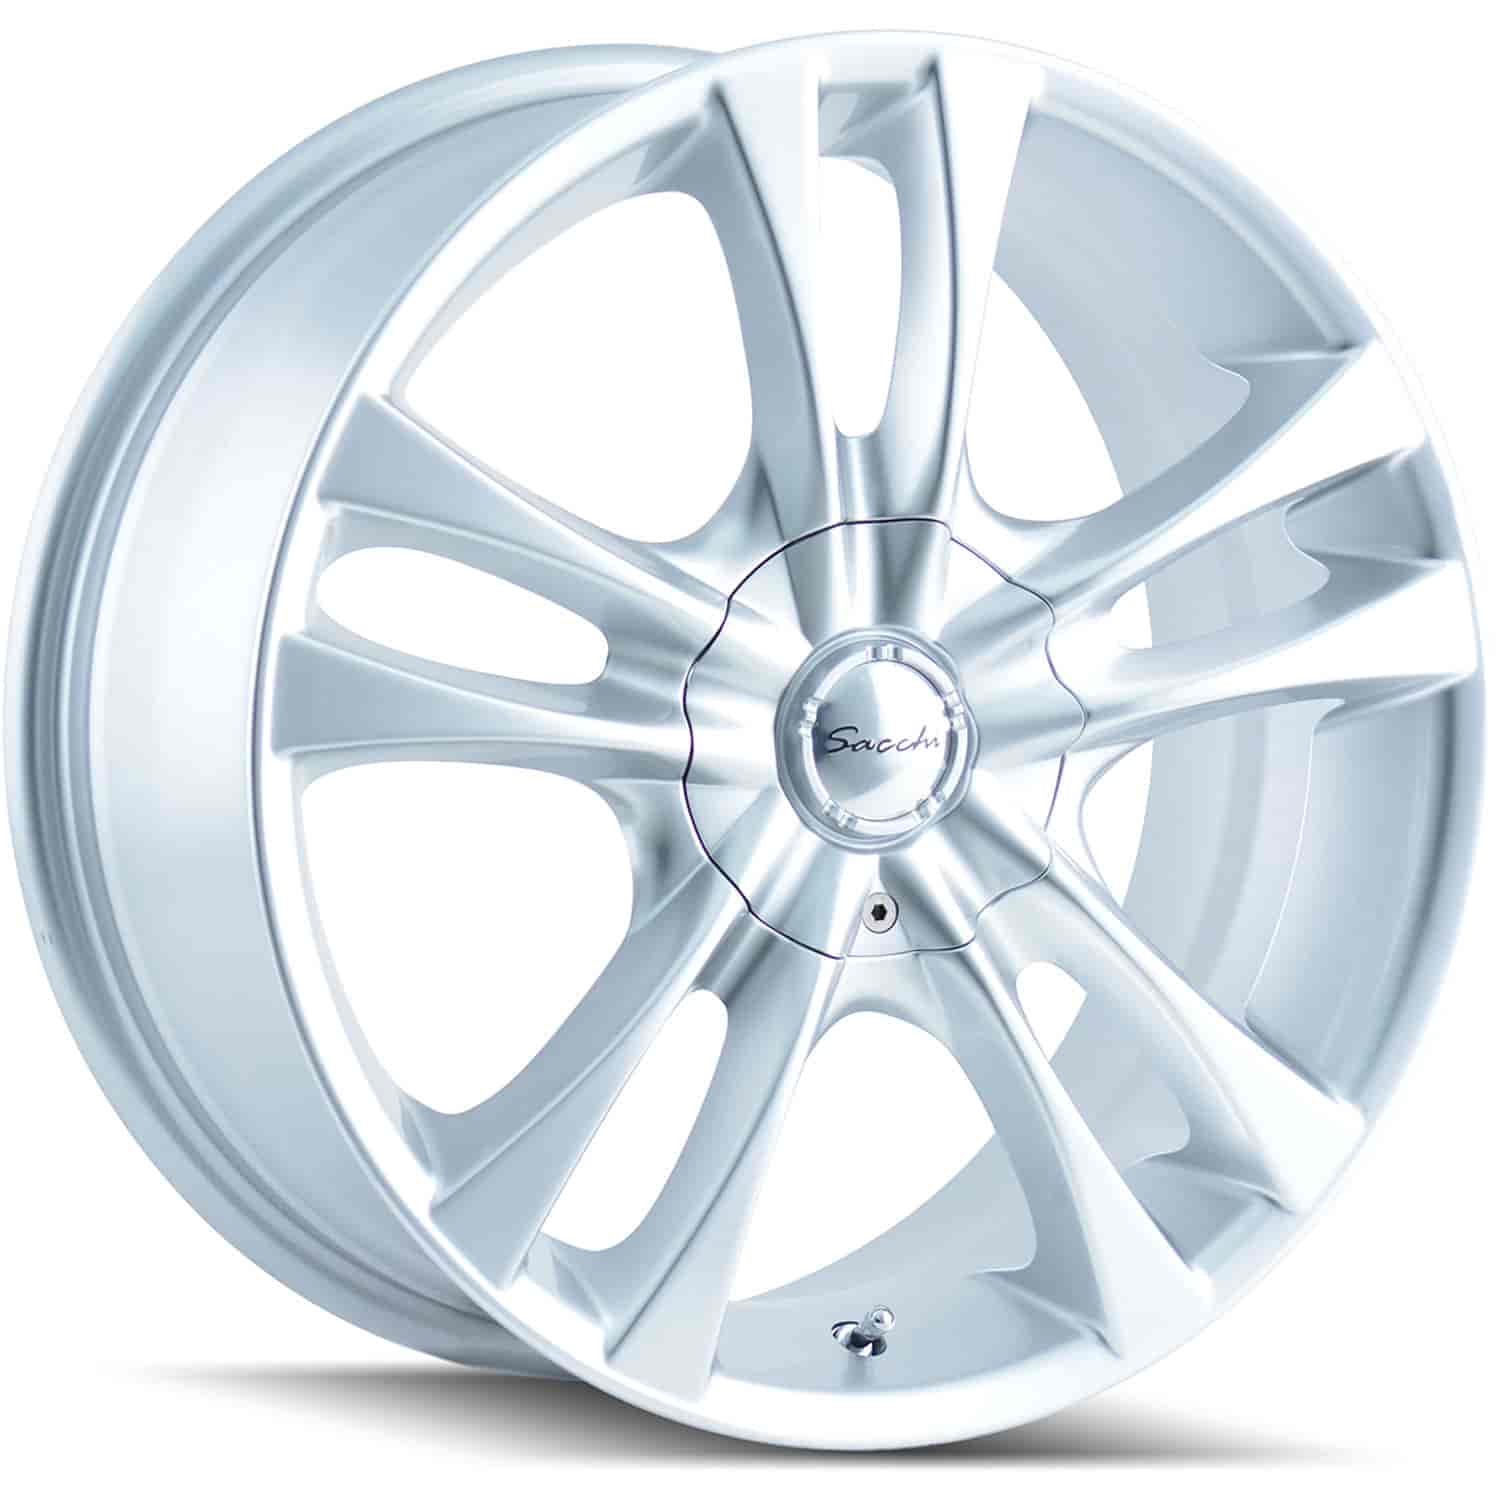 The Wheel Group 220-7708S